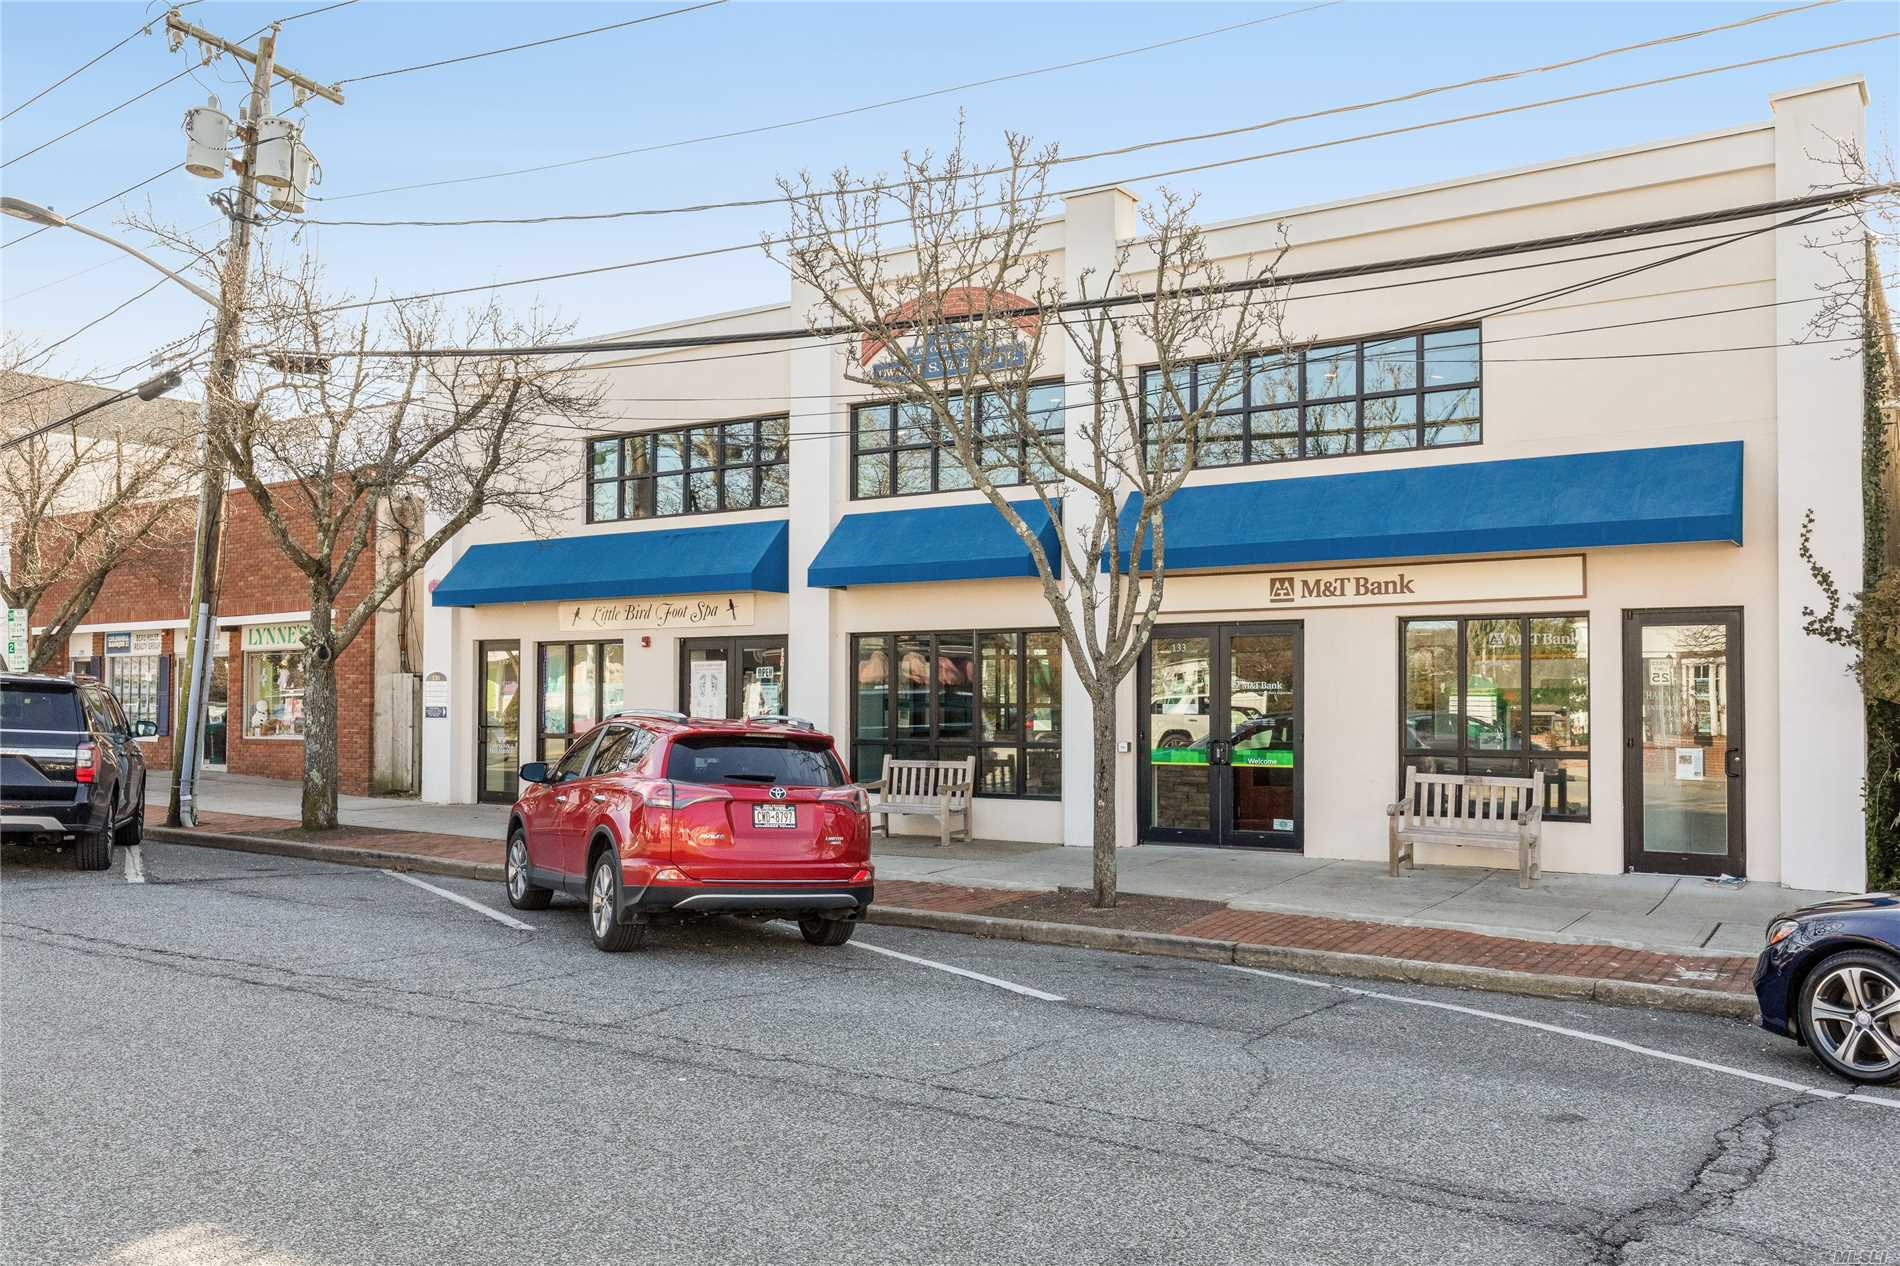 135 Main - Westhampton Beach, New York